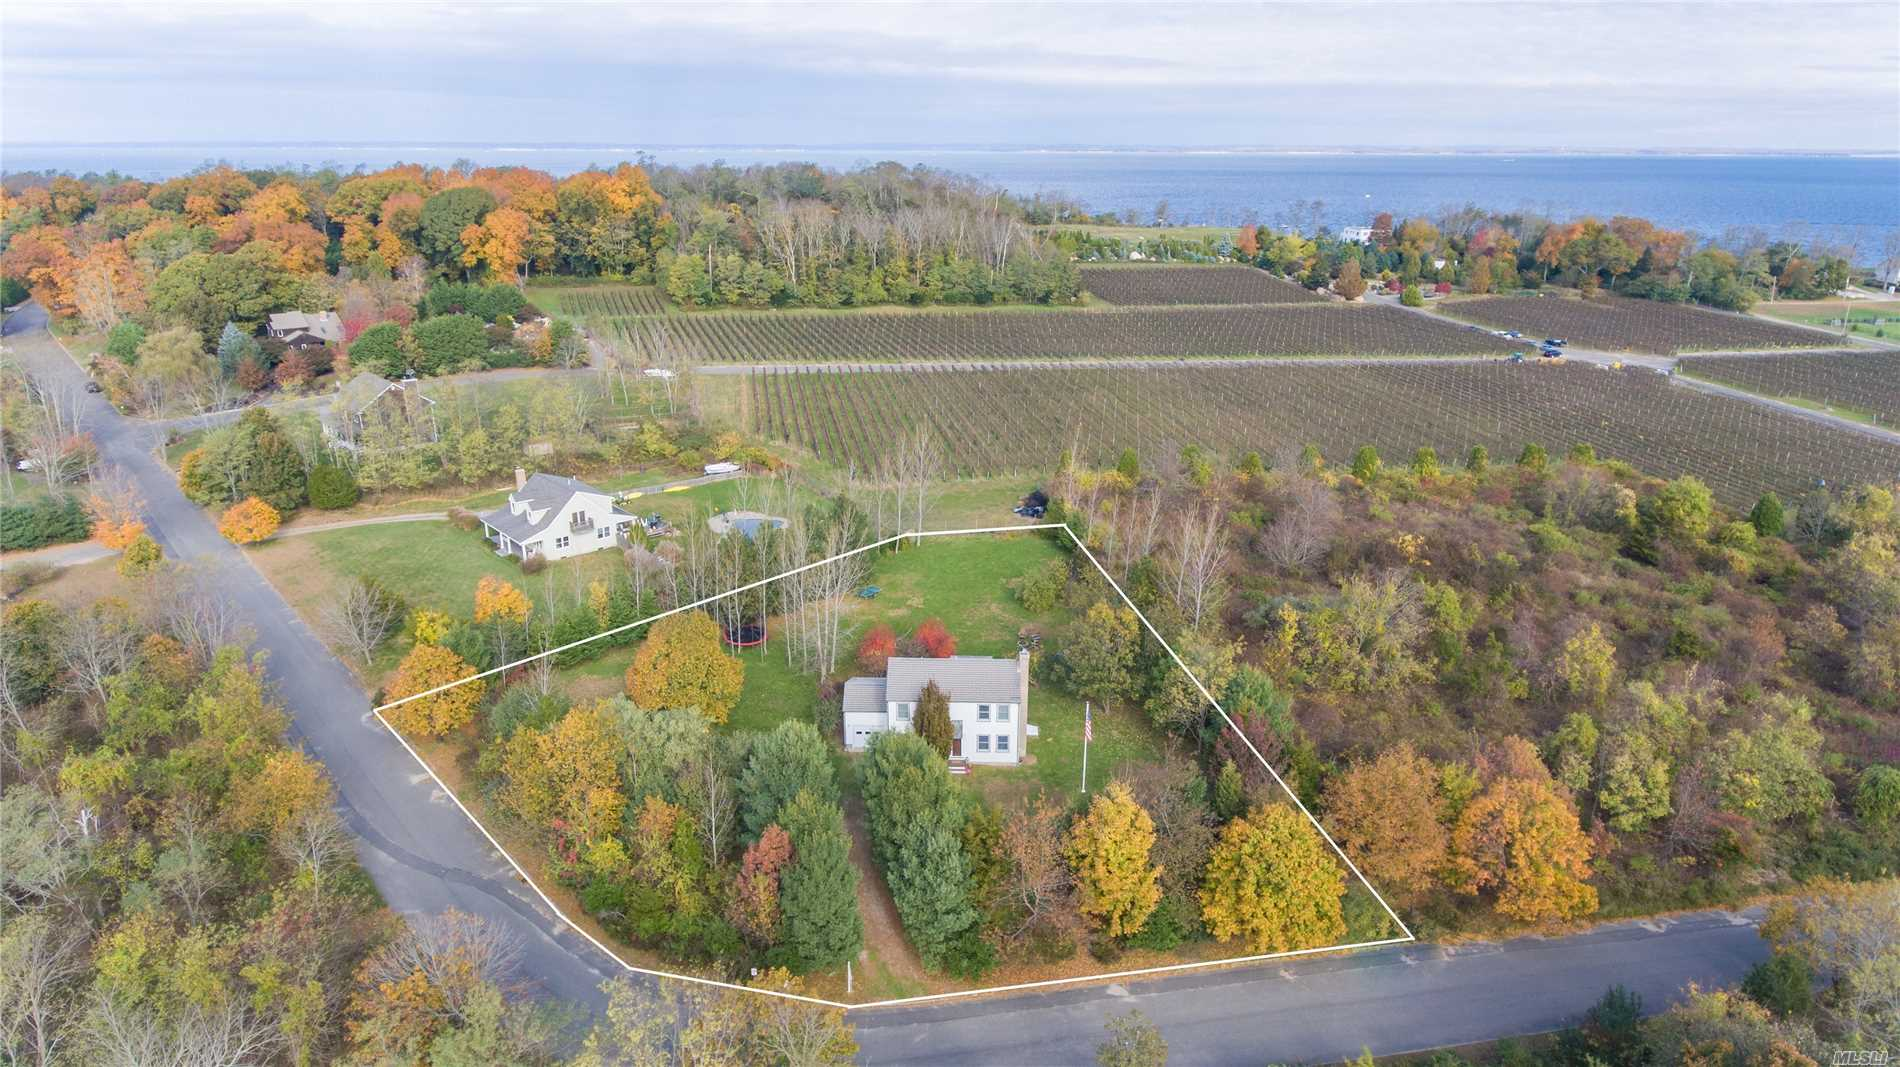 Mint condition, fully renovated home in Hillcrest Estates, Orient. Private and beautifully set on .92 acres, overlooking vineyard, open space and planned conservation easement. New gourmet kitchen, hardwood floors, wood burning fireplace, 1-car garage, mature specimen trees and room for a pool.